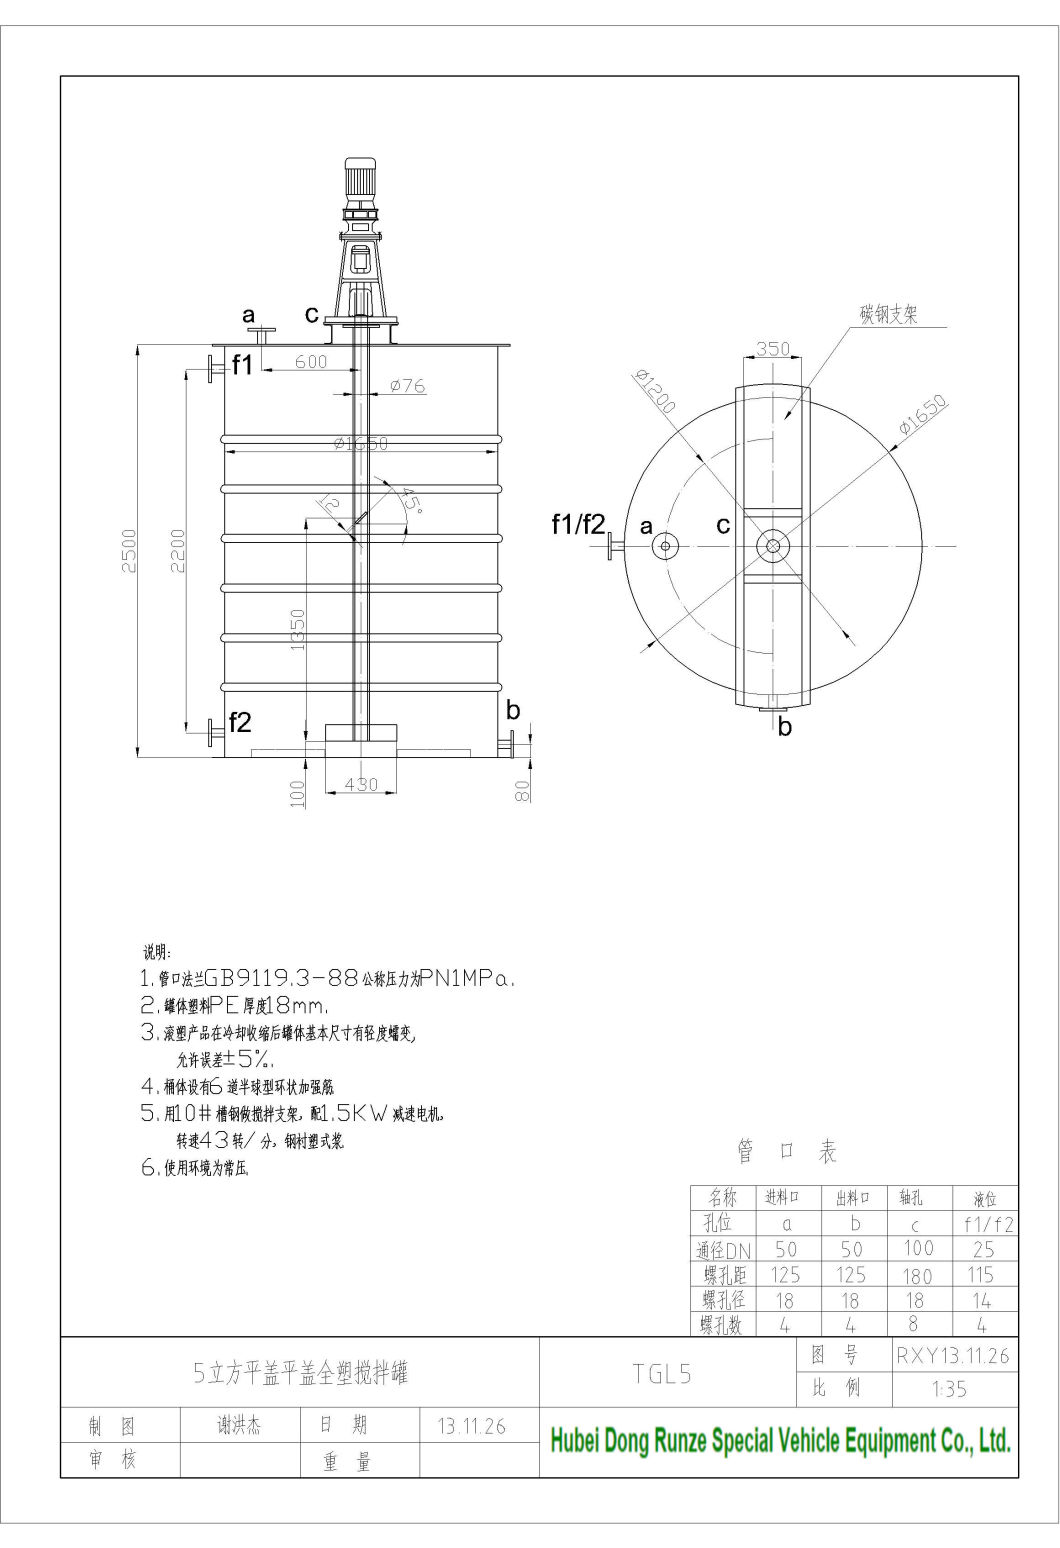 Reactor Tank (Chemical Storage Reactor Tank Carbon Steel Inner lining LLDPE, Stainless Steel, PE) 1-25m3 Customize Mixer Bar